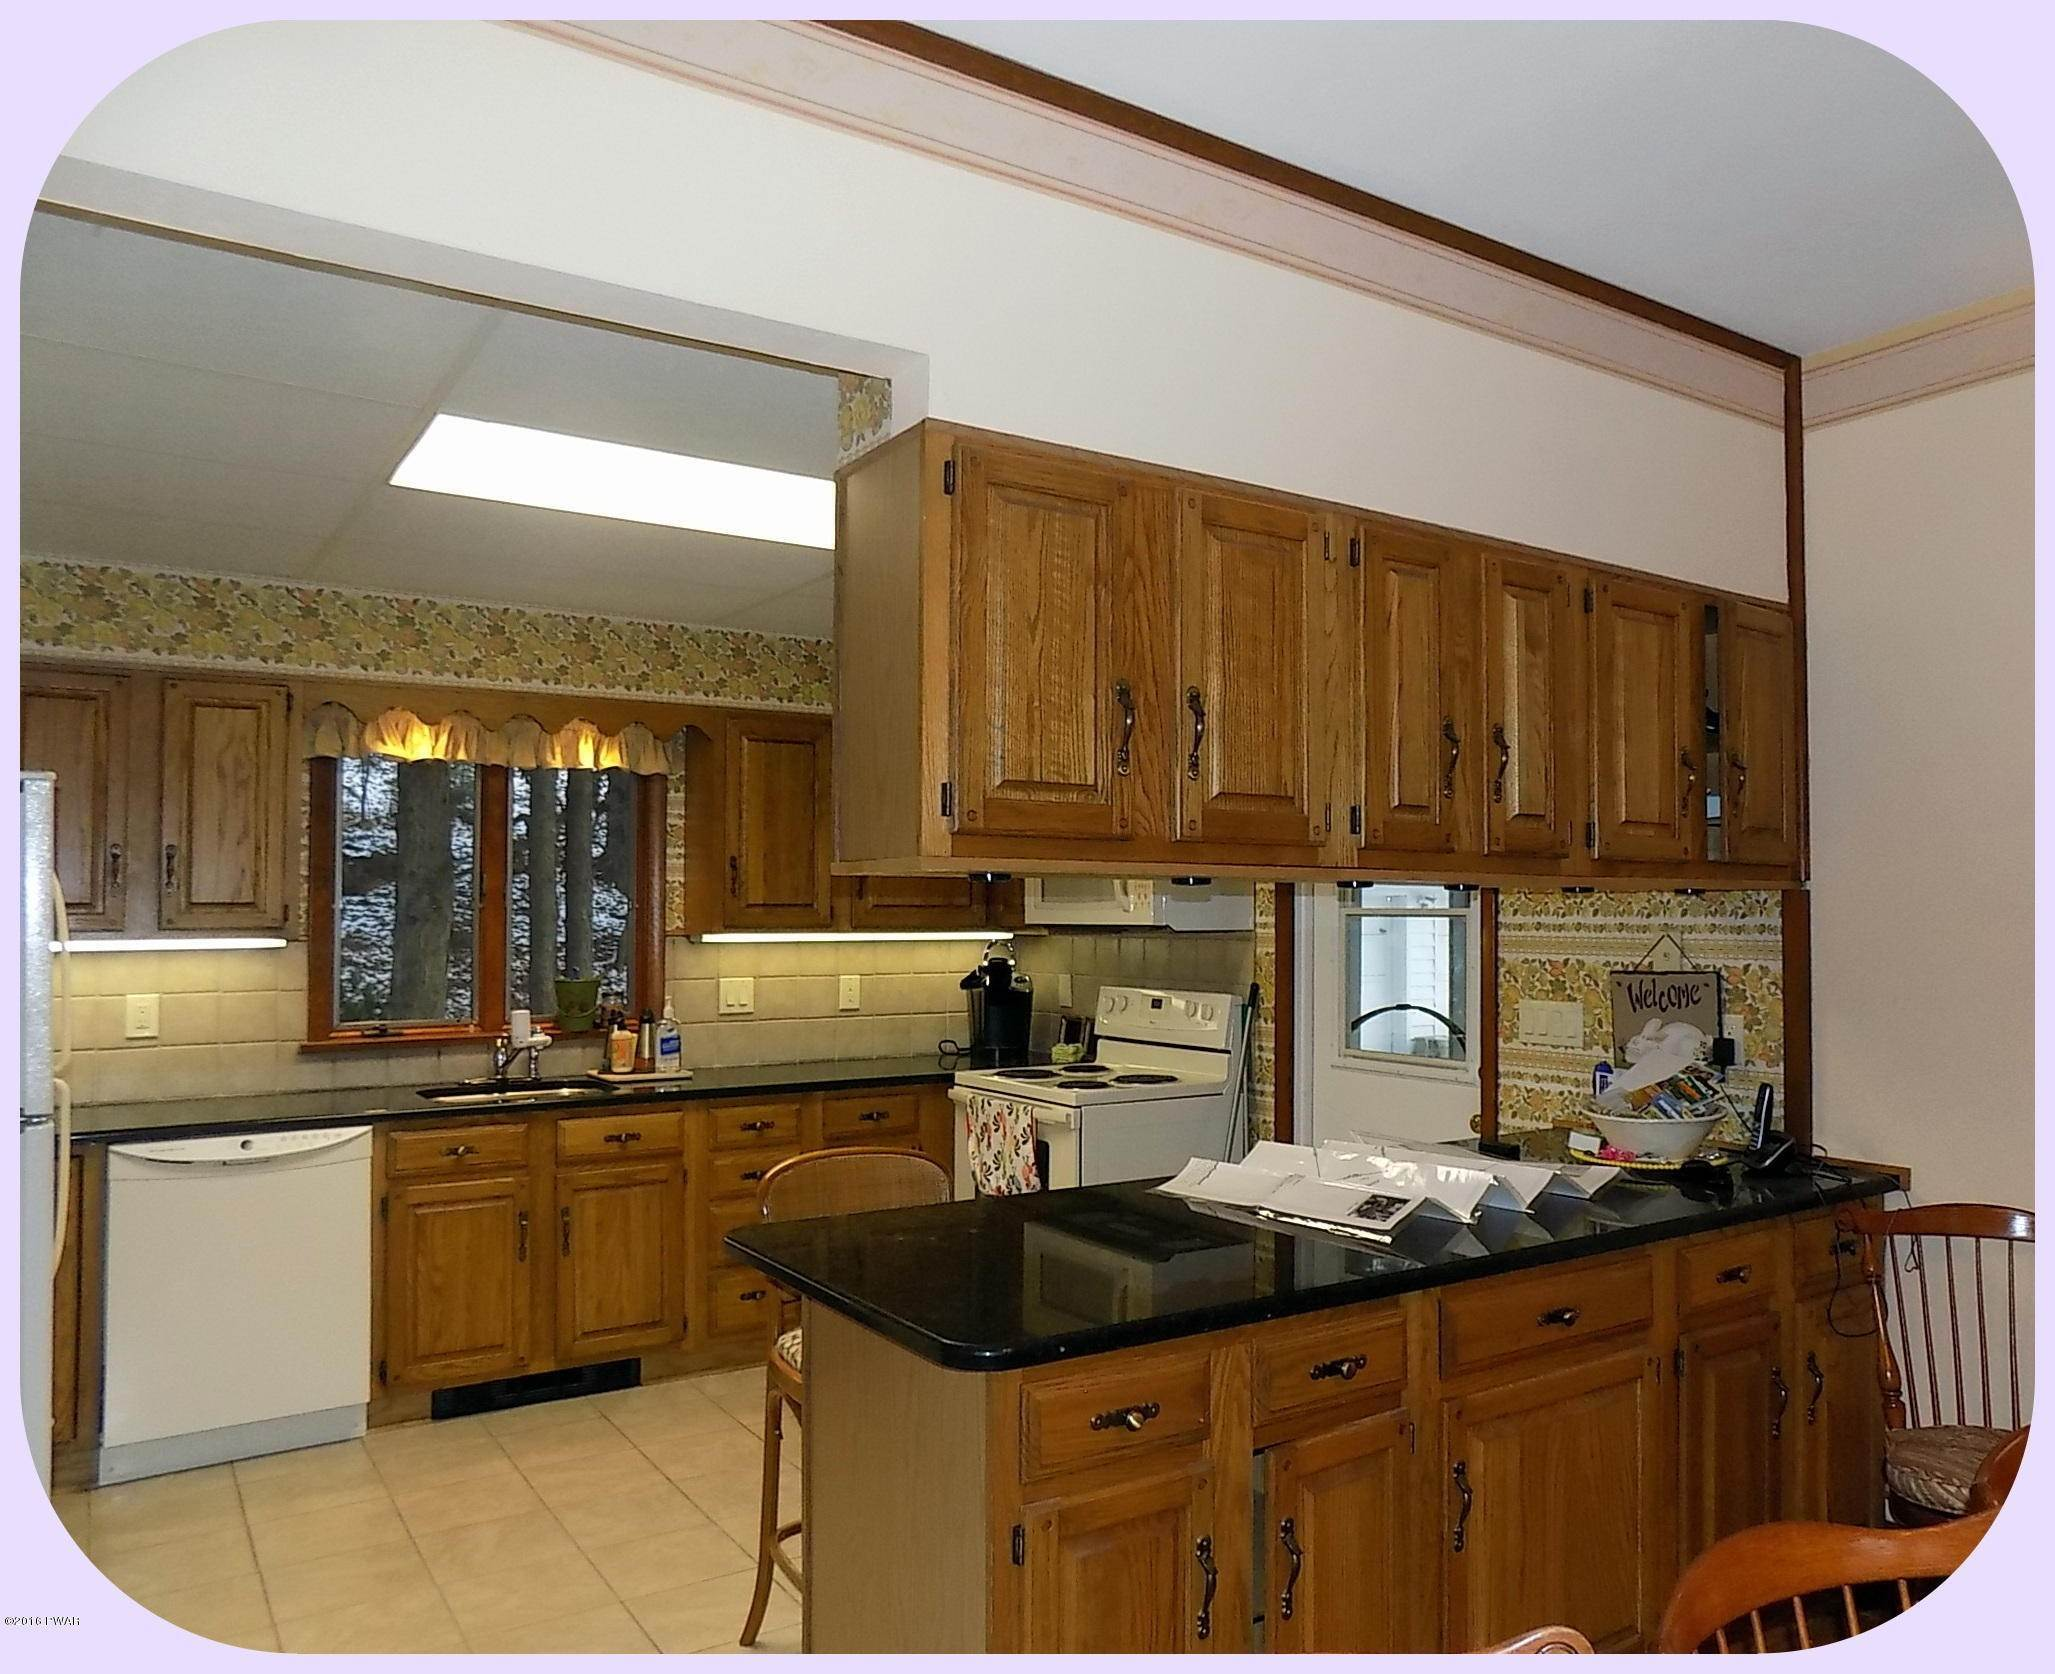 29. Single Family Homes for Sale at 278 S Sterling Rd South Sterling, Pennsylvania 18460 United States